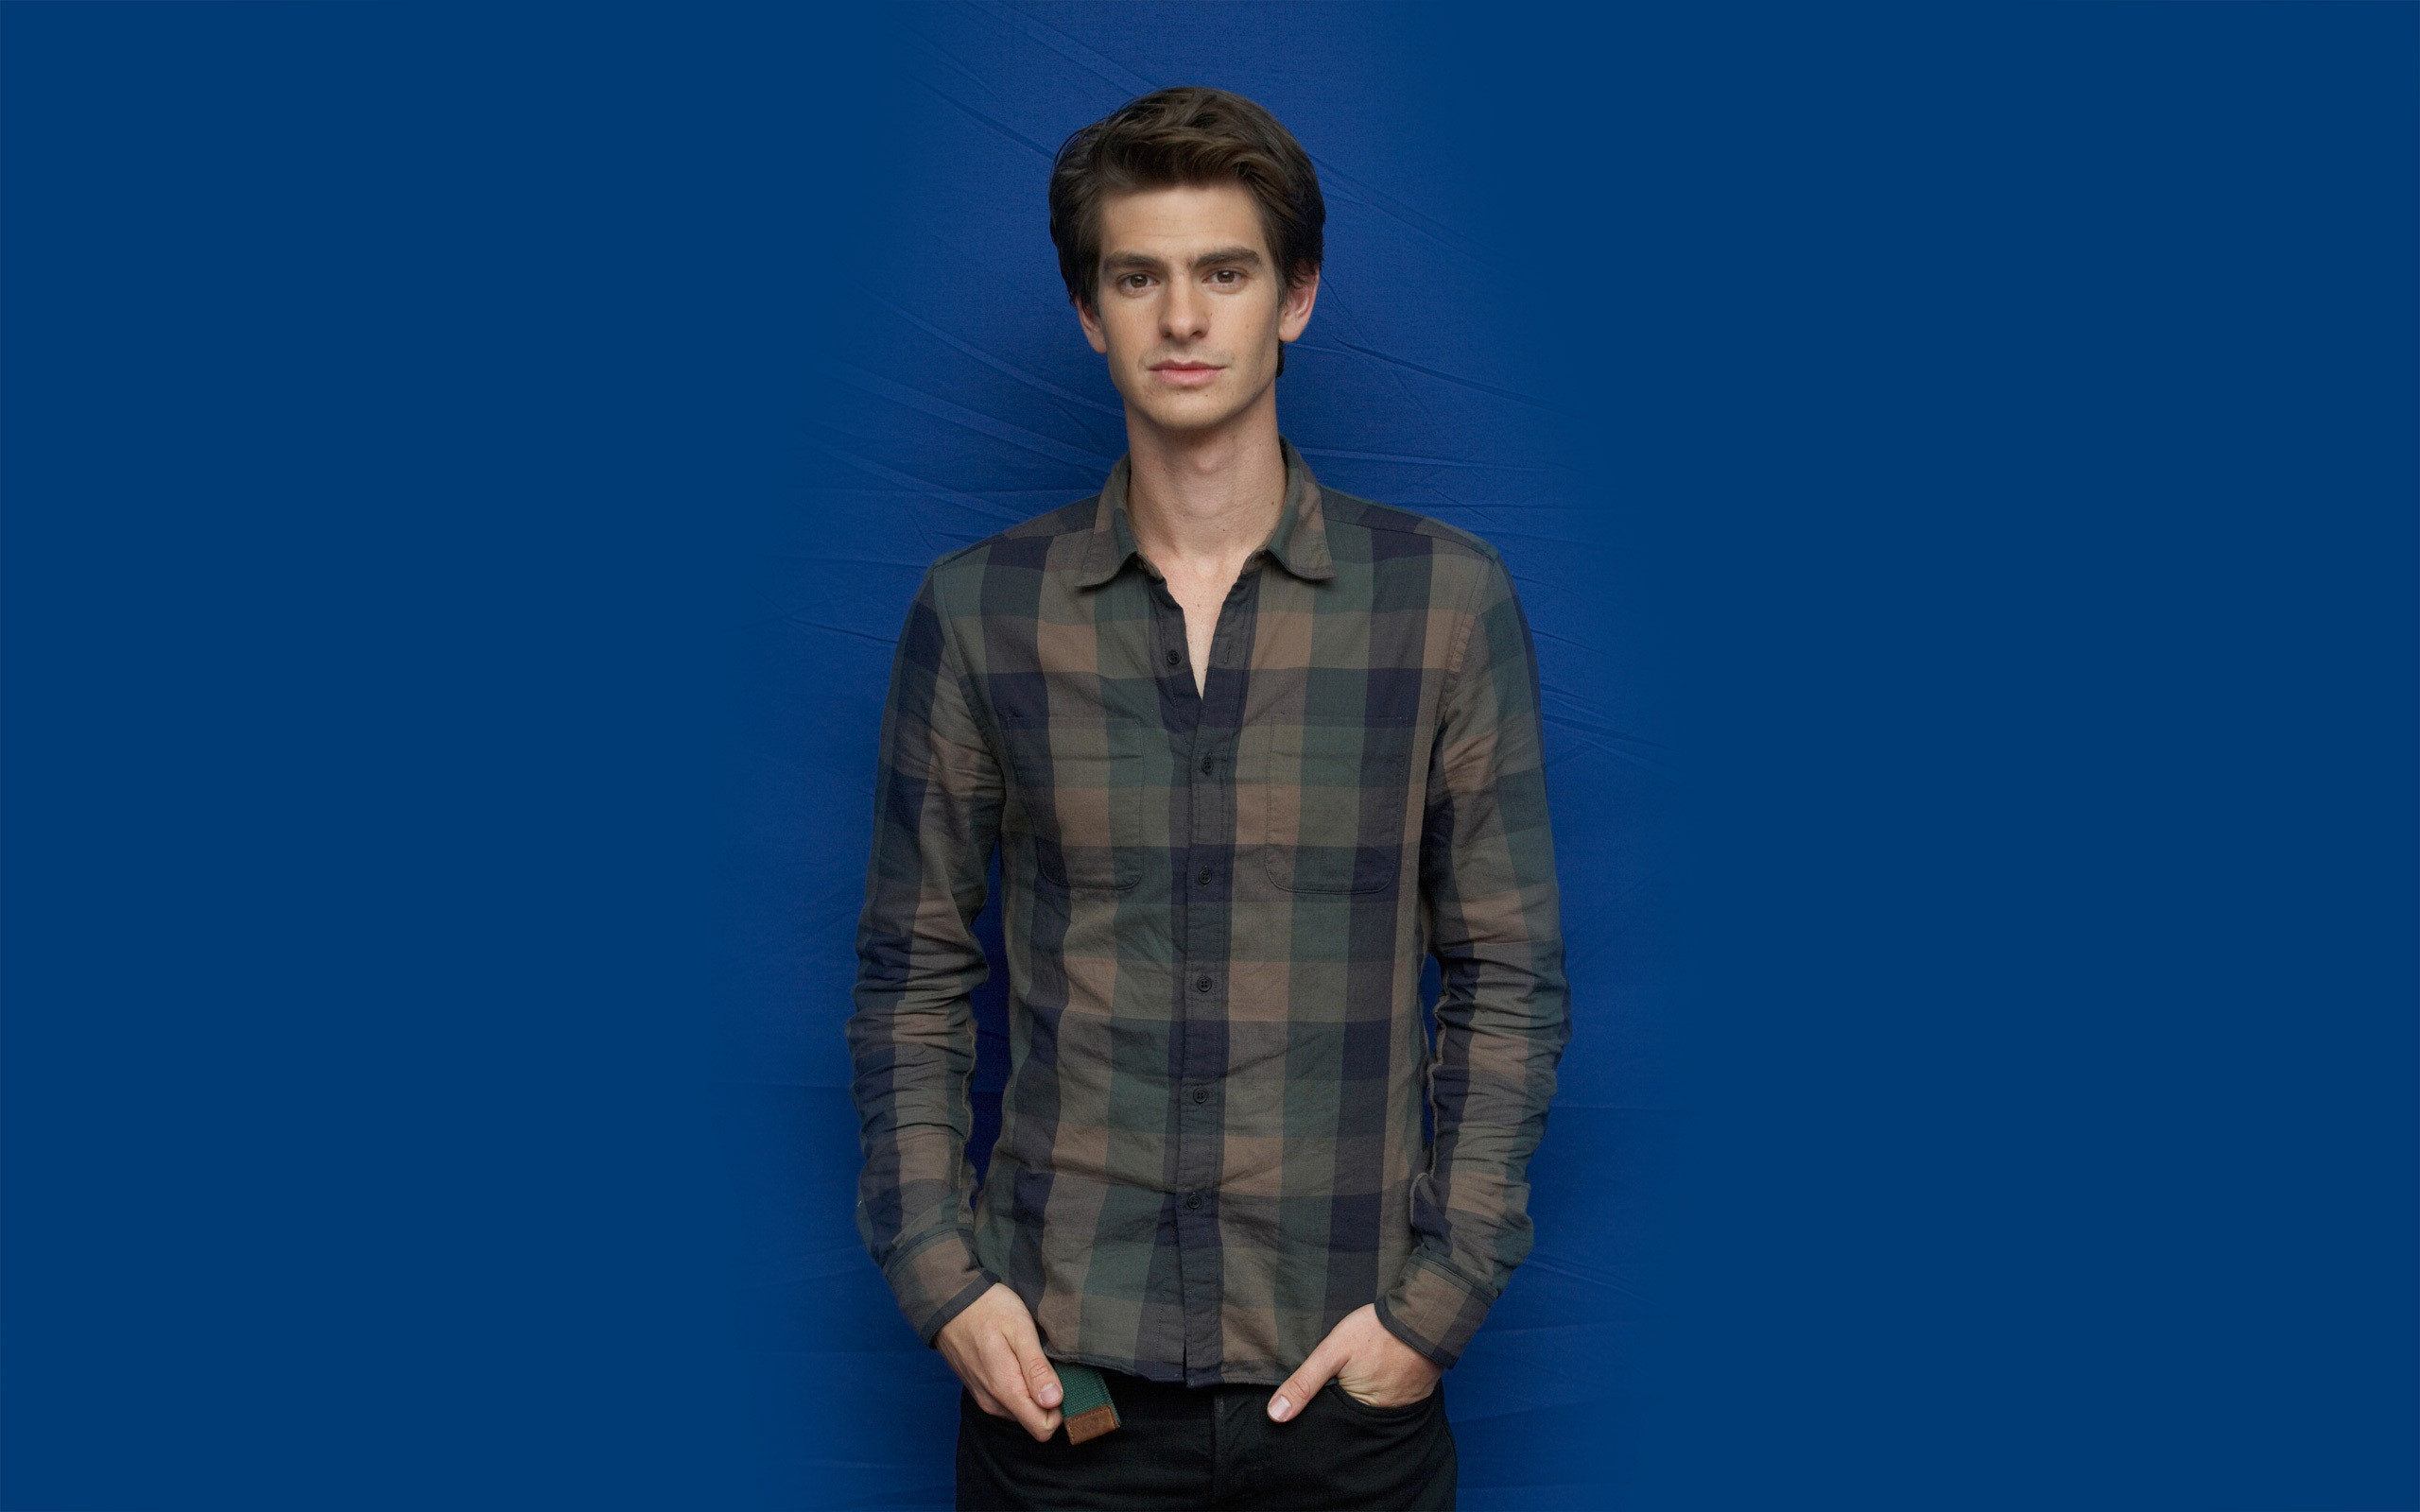 2560x1600 andrew garfield widescreen wallpaper desktop wallpapers hd images free 4k  hd pictures tablet smart phone 2560×1600 Wallpaper HD